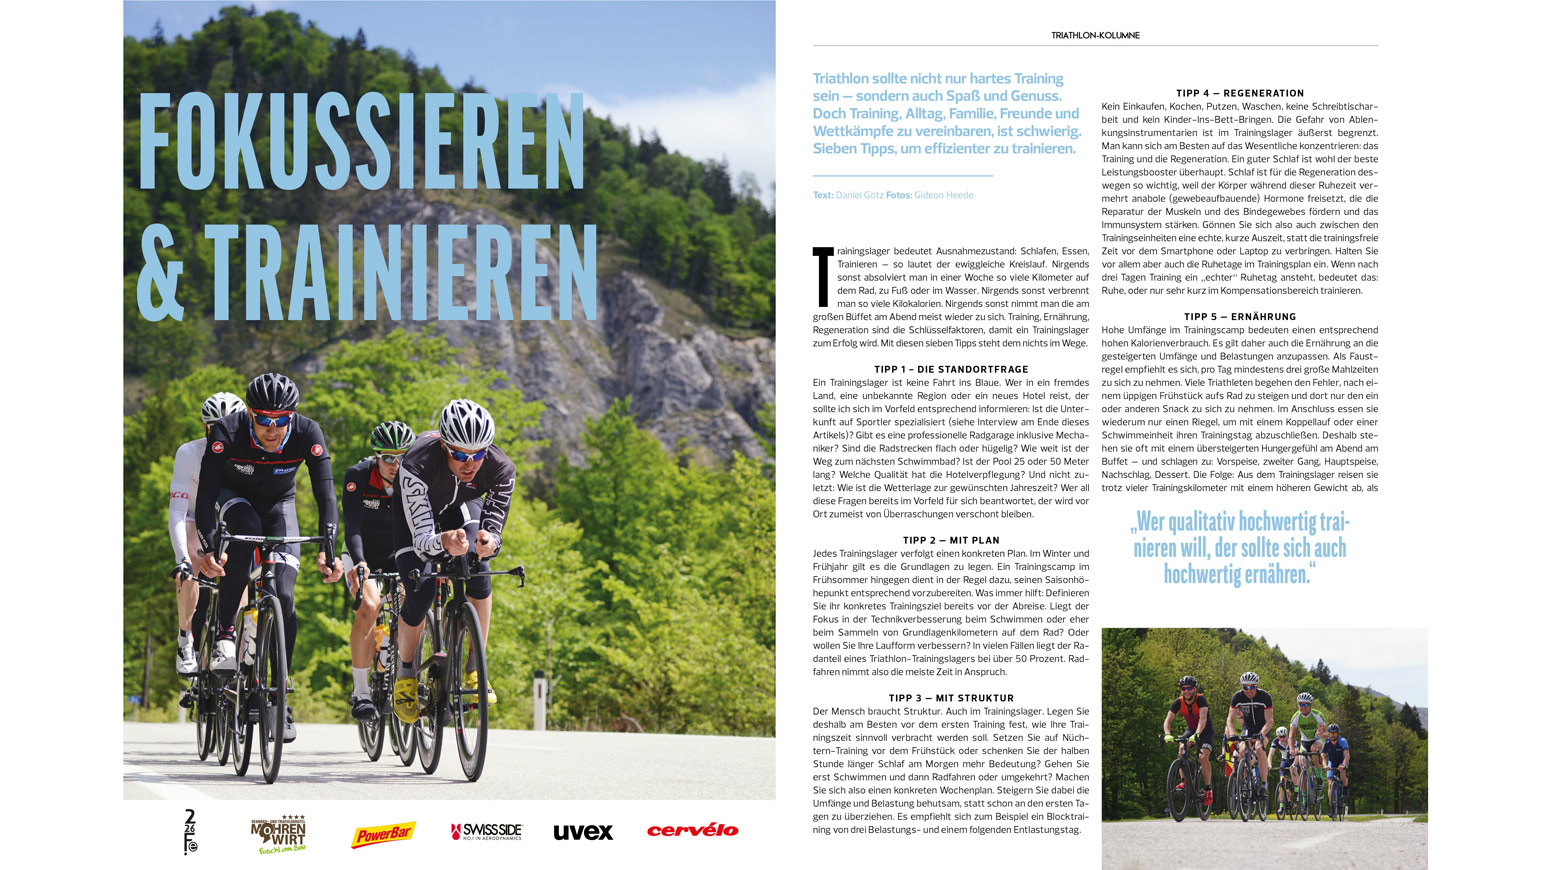 Triathlon-Trainingslager-Tipps